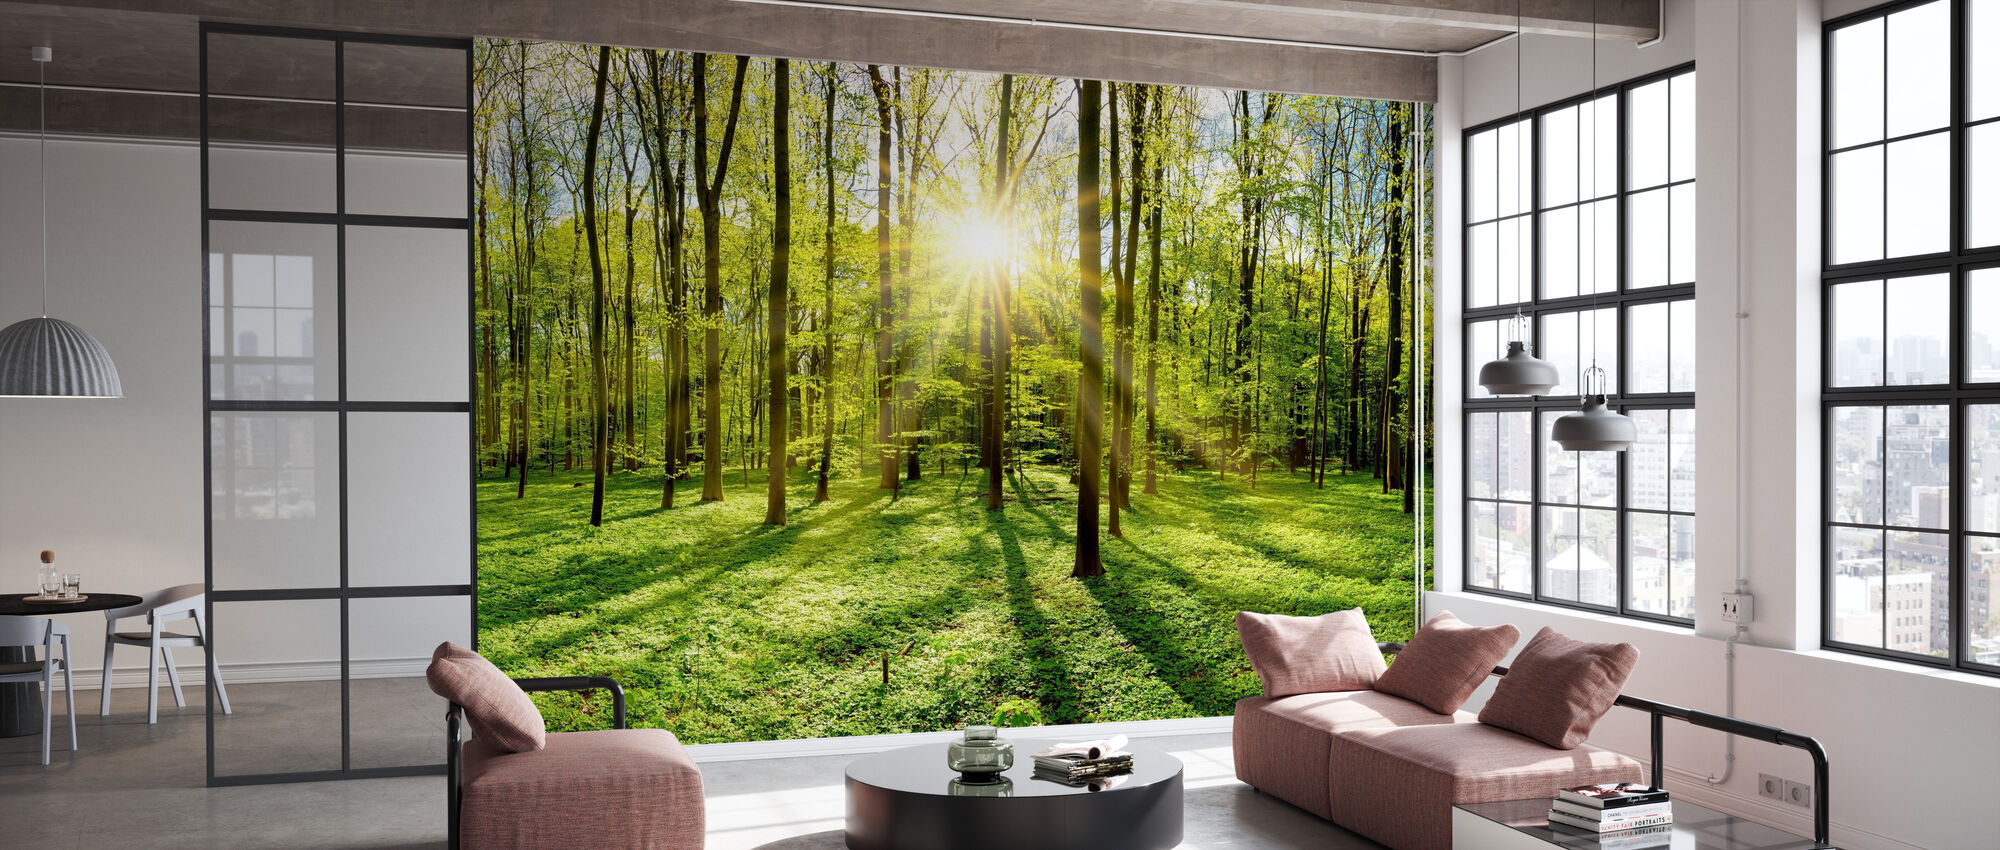 Forest in Bright Sunshine - Wallpaper - Office